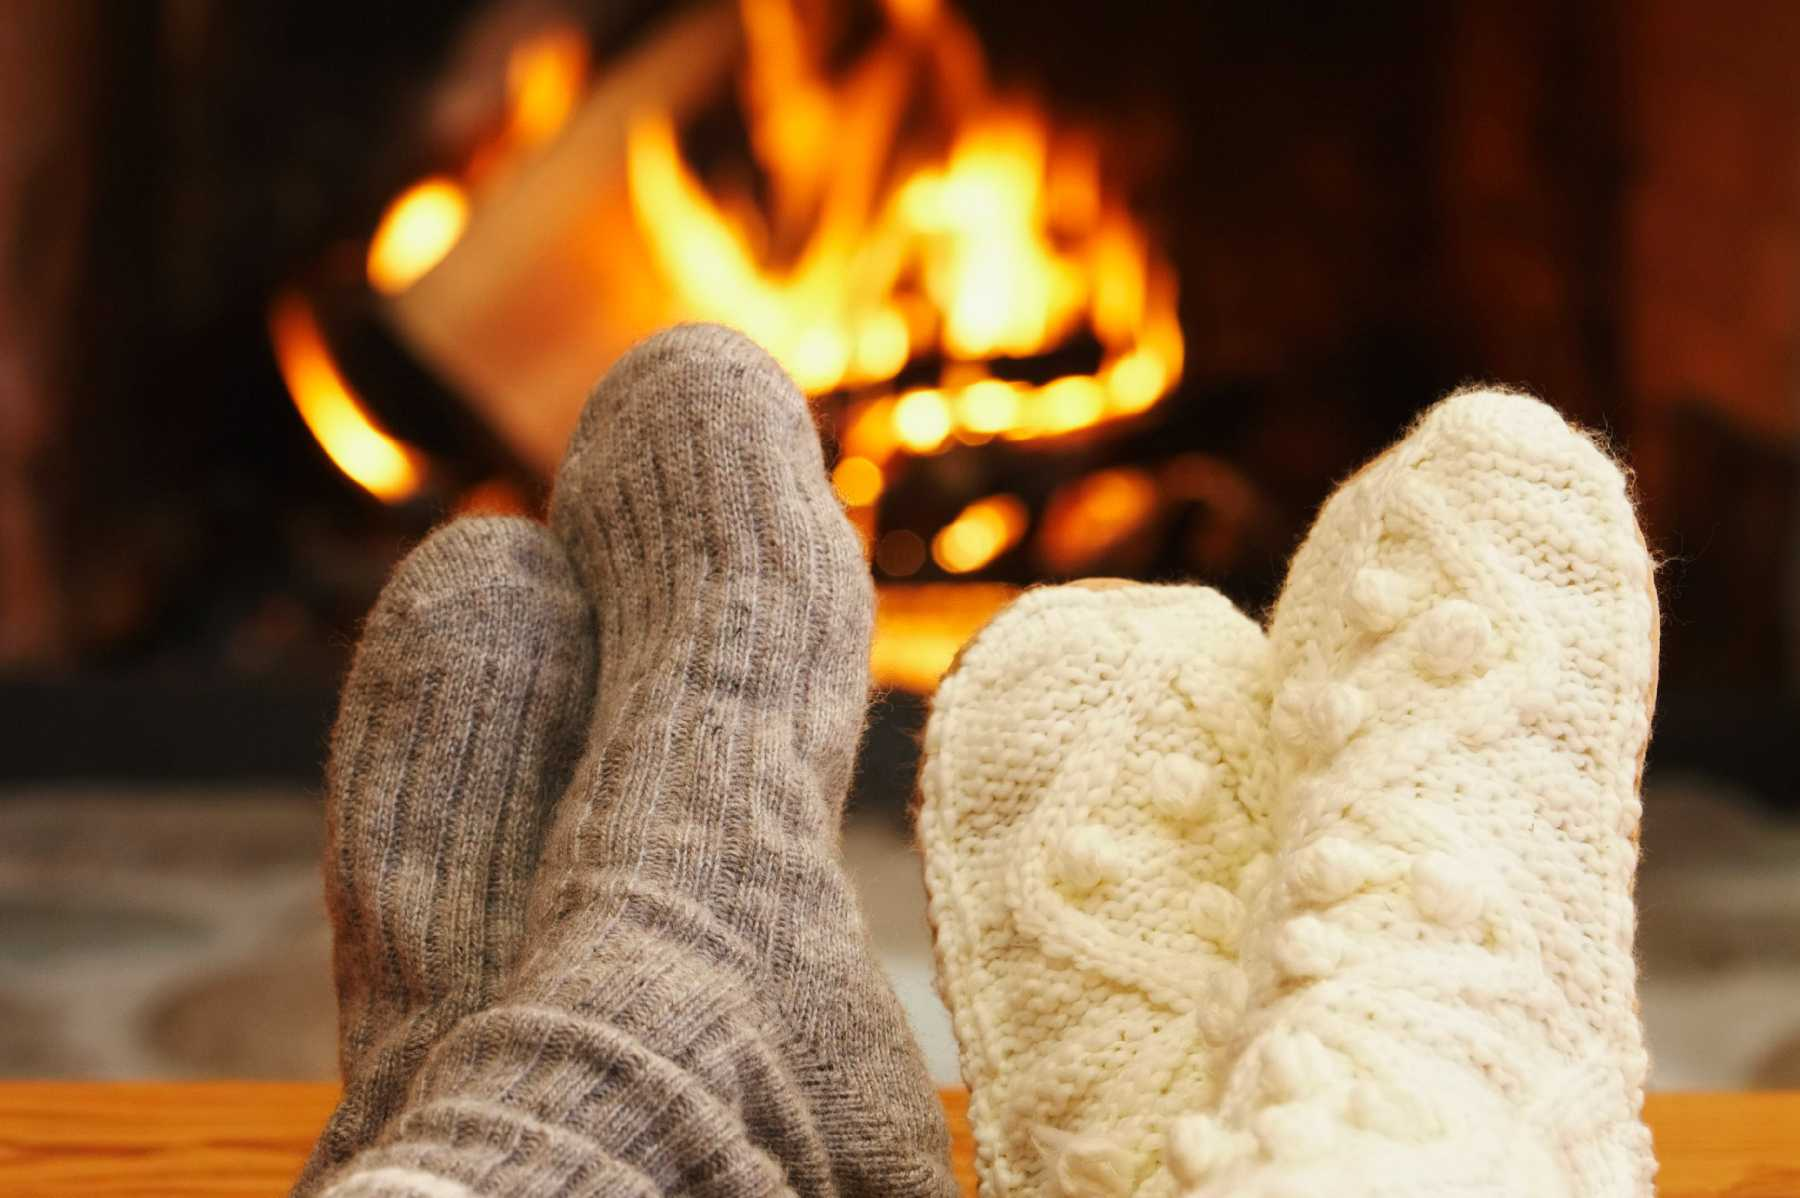 600-01235291© Masterfile Model Release Feet in Front of Fireplace